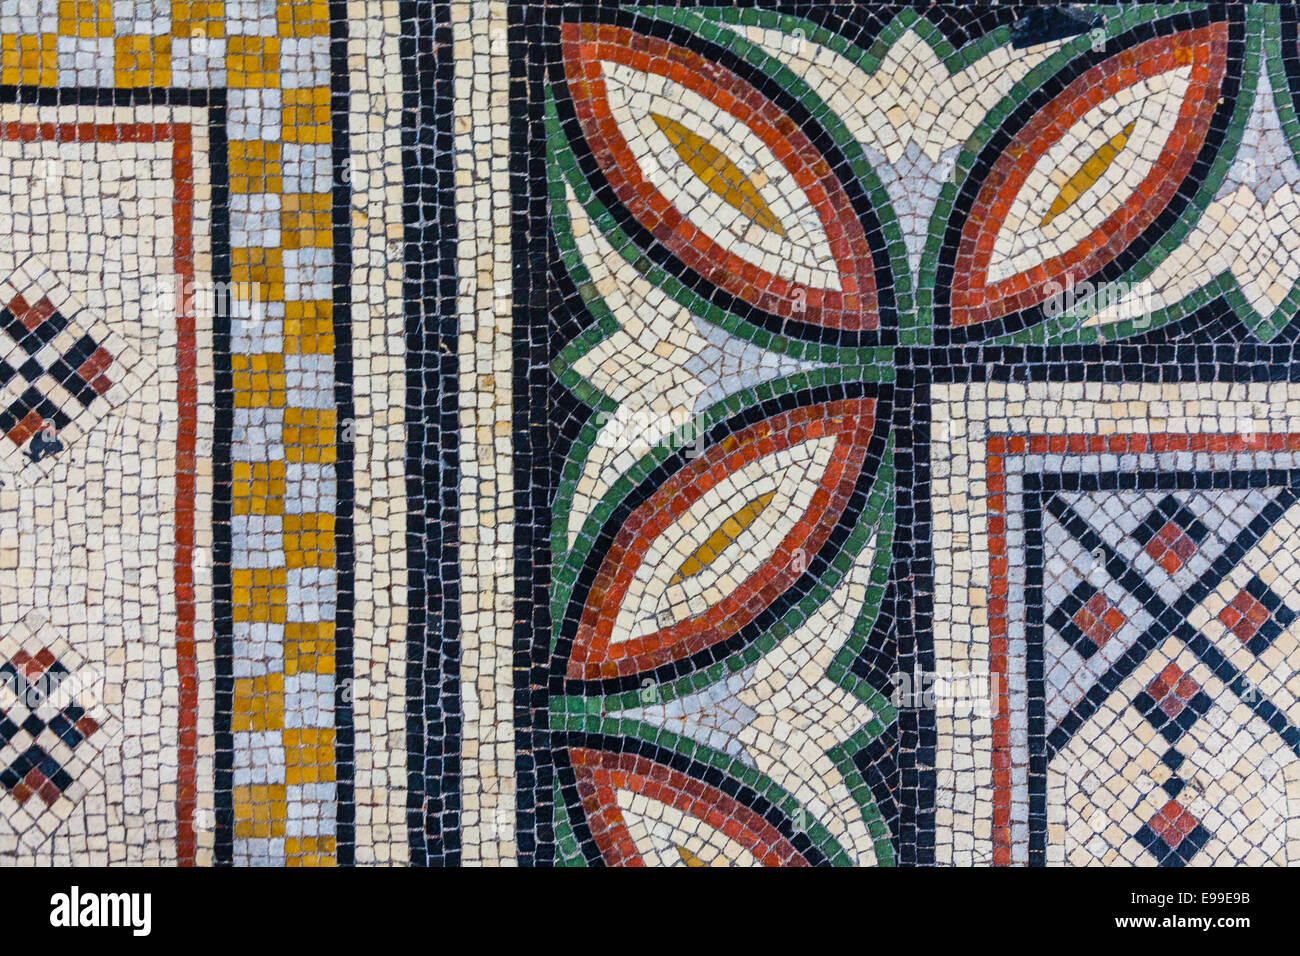 Abstract example of mosaic flooring in the Cathedral Major, Marseille, France. - Stock Image